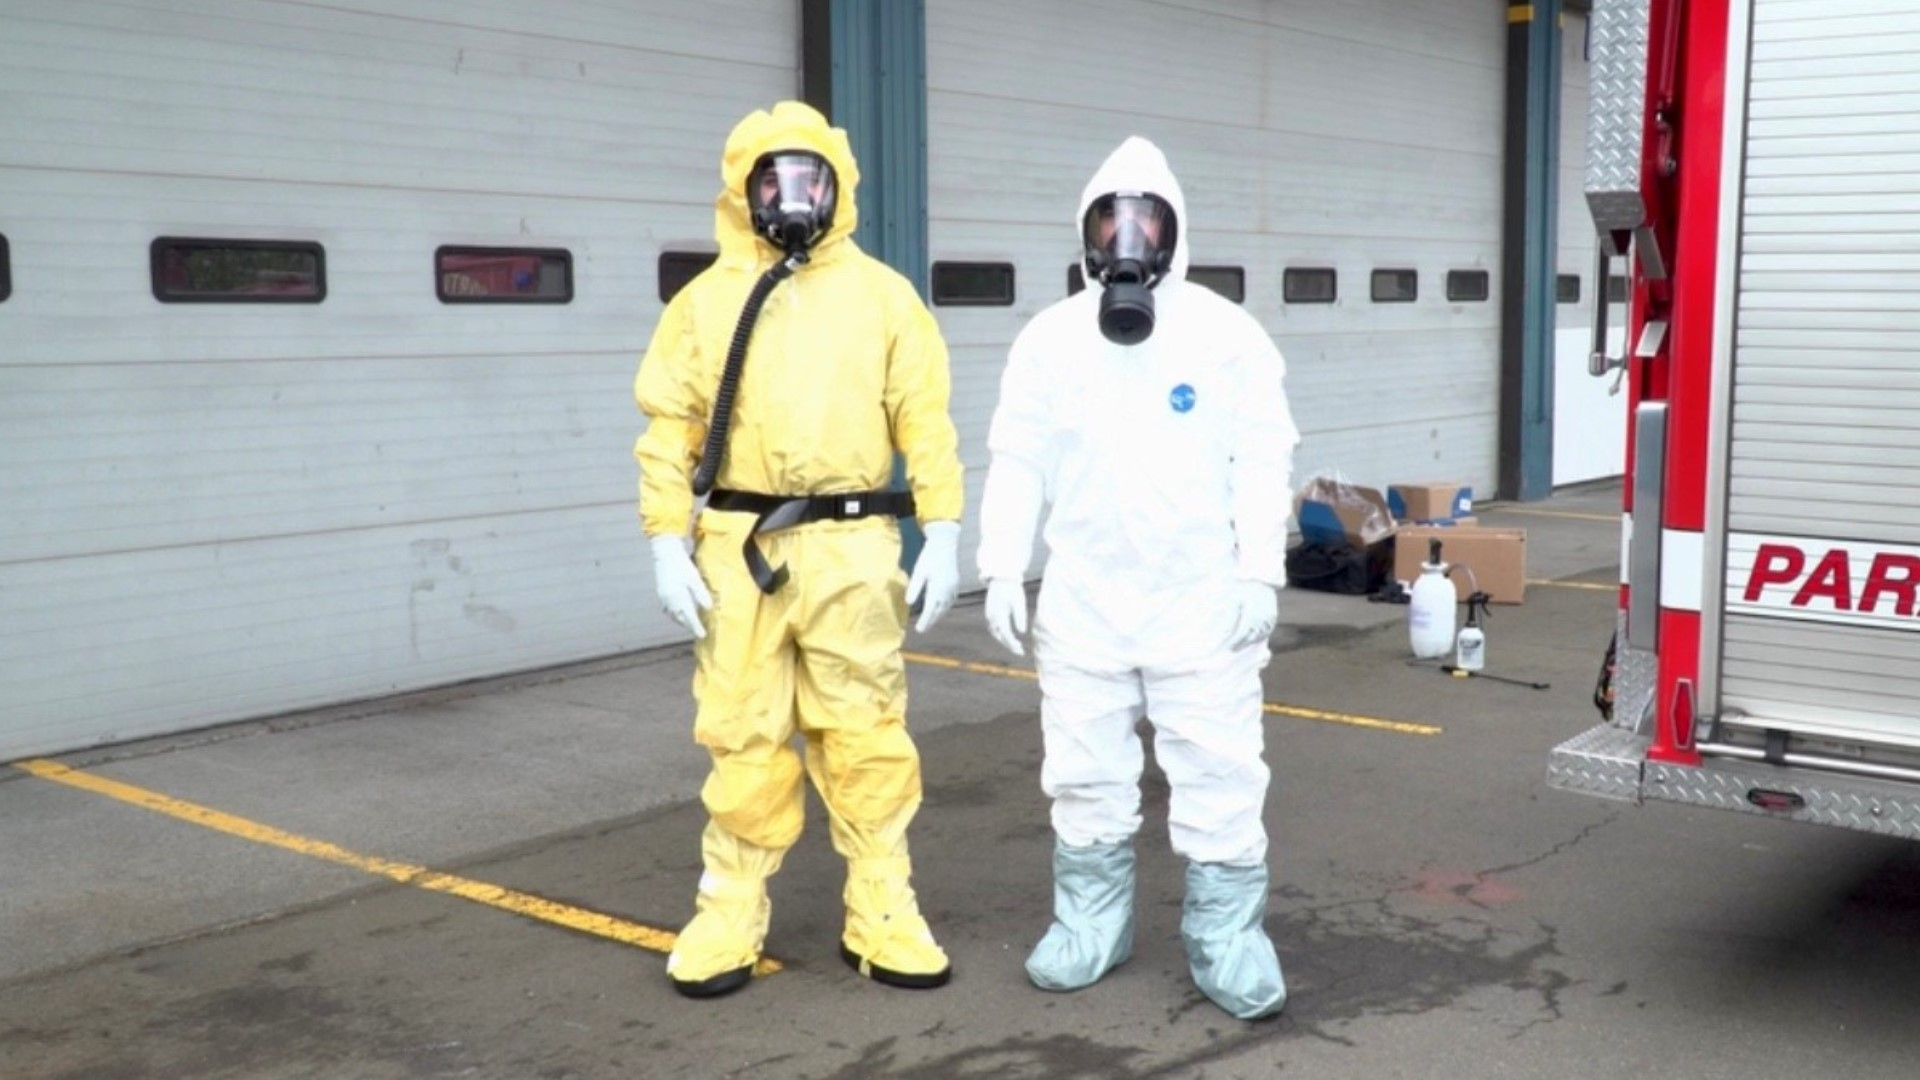 Portland Firefighters Wear Hazmat Suits To Medical Calls Fox61 Com